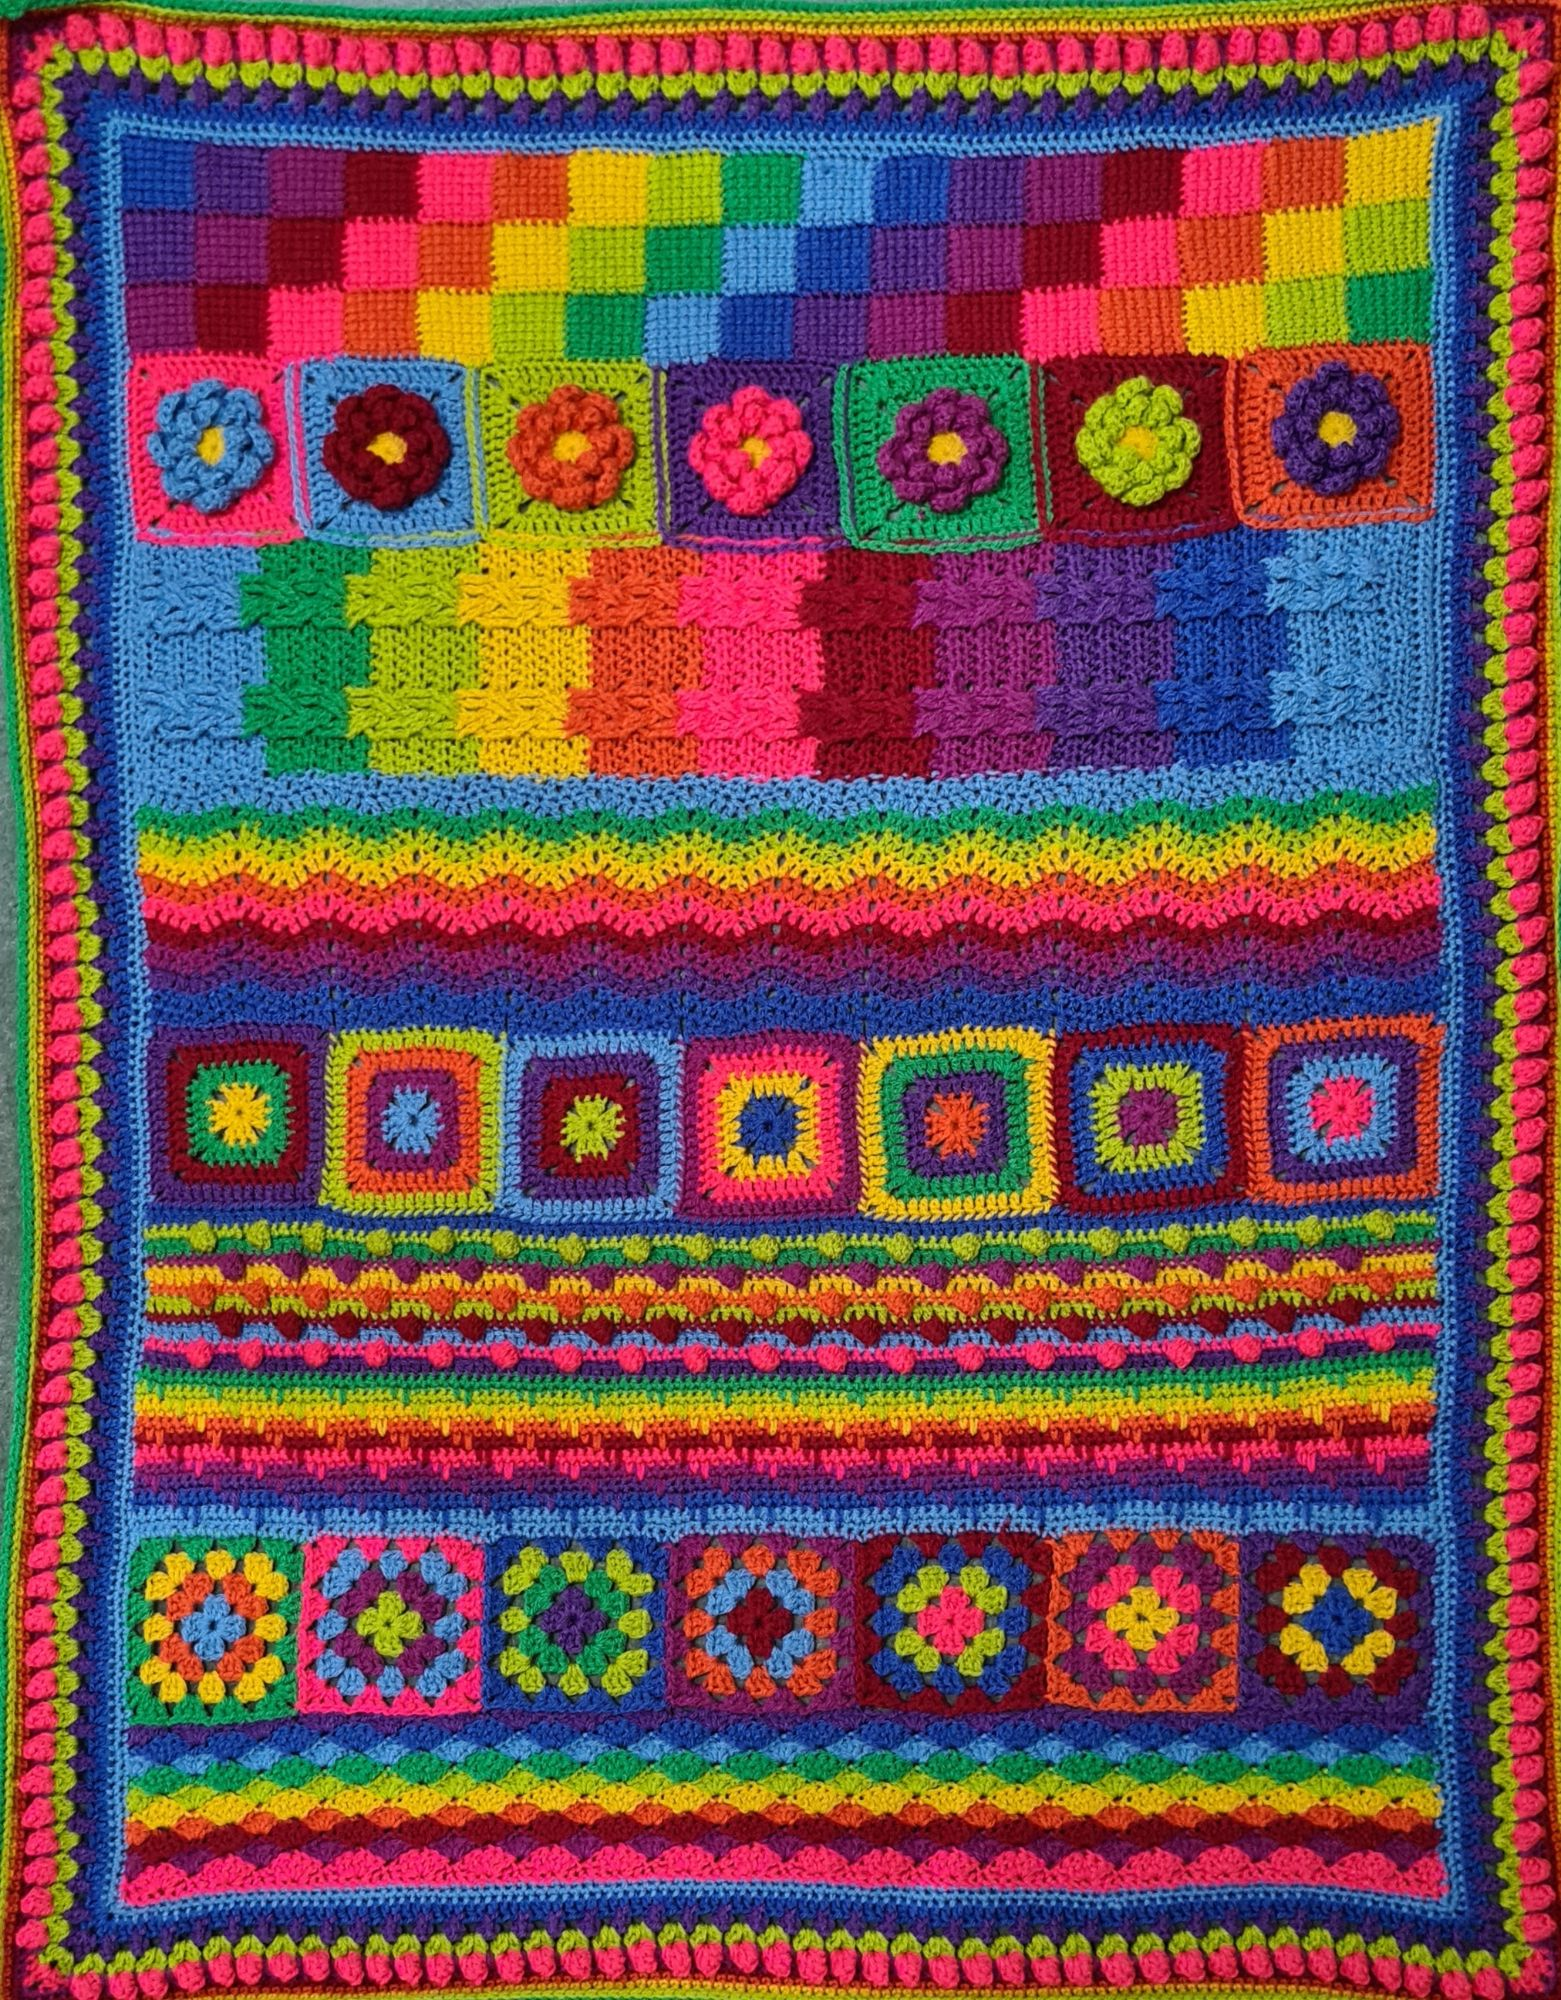 Diana_Bensted_-_Crochet_Masterclass_complete_blanket[1]